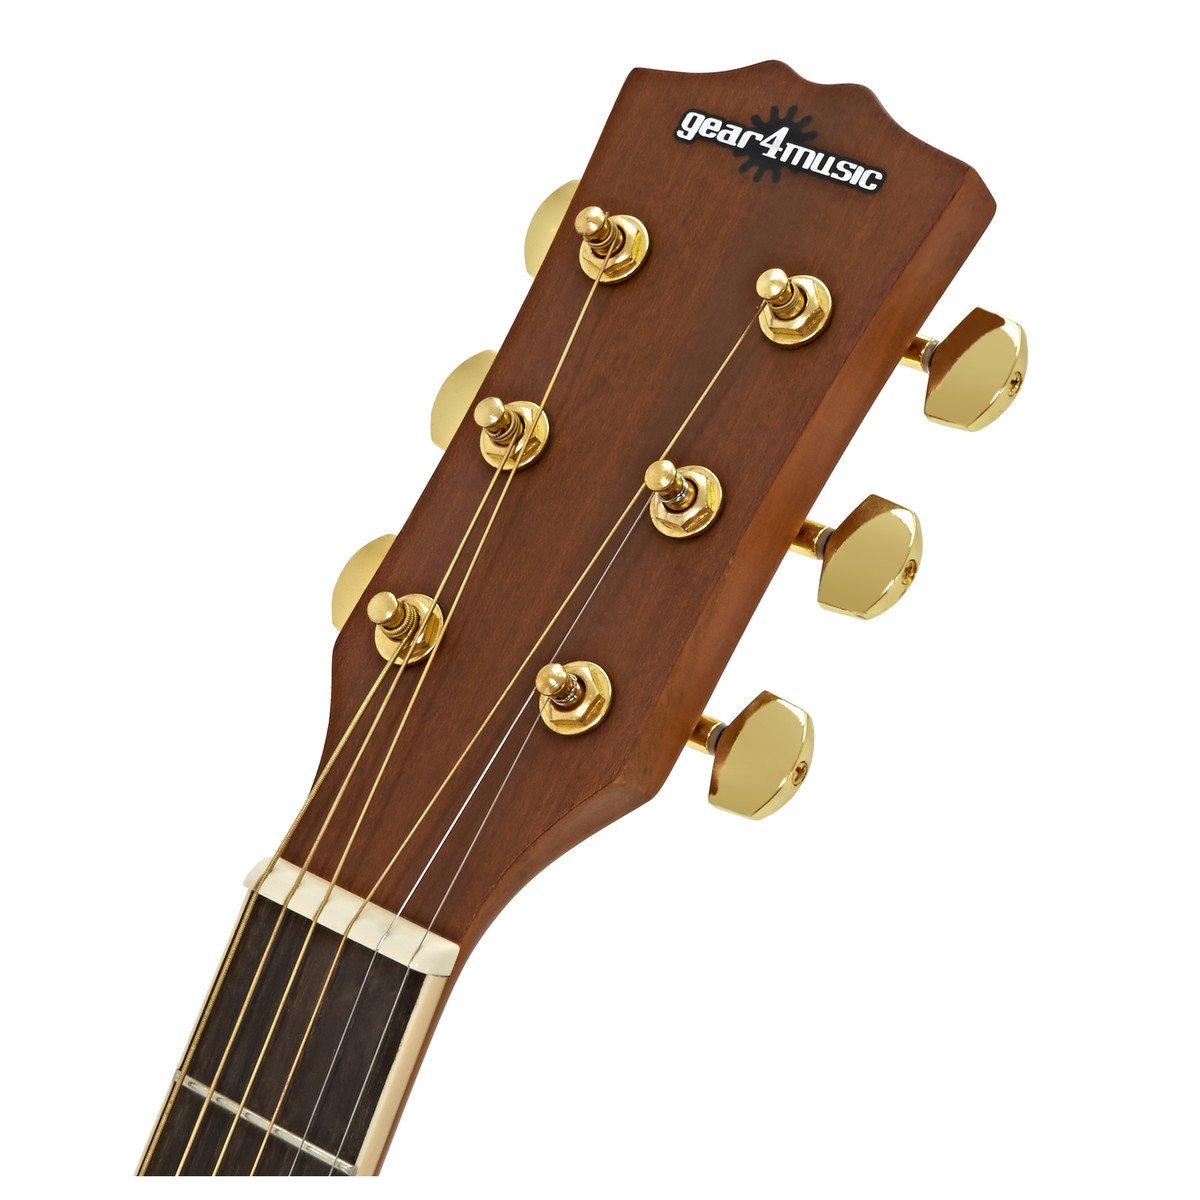 Guitarra Electroacustica Roundback de Gear4music: Amazon.es ...